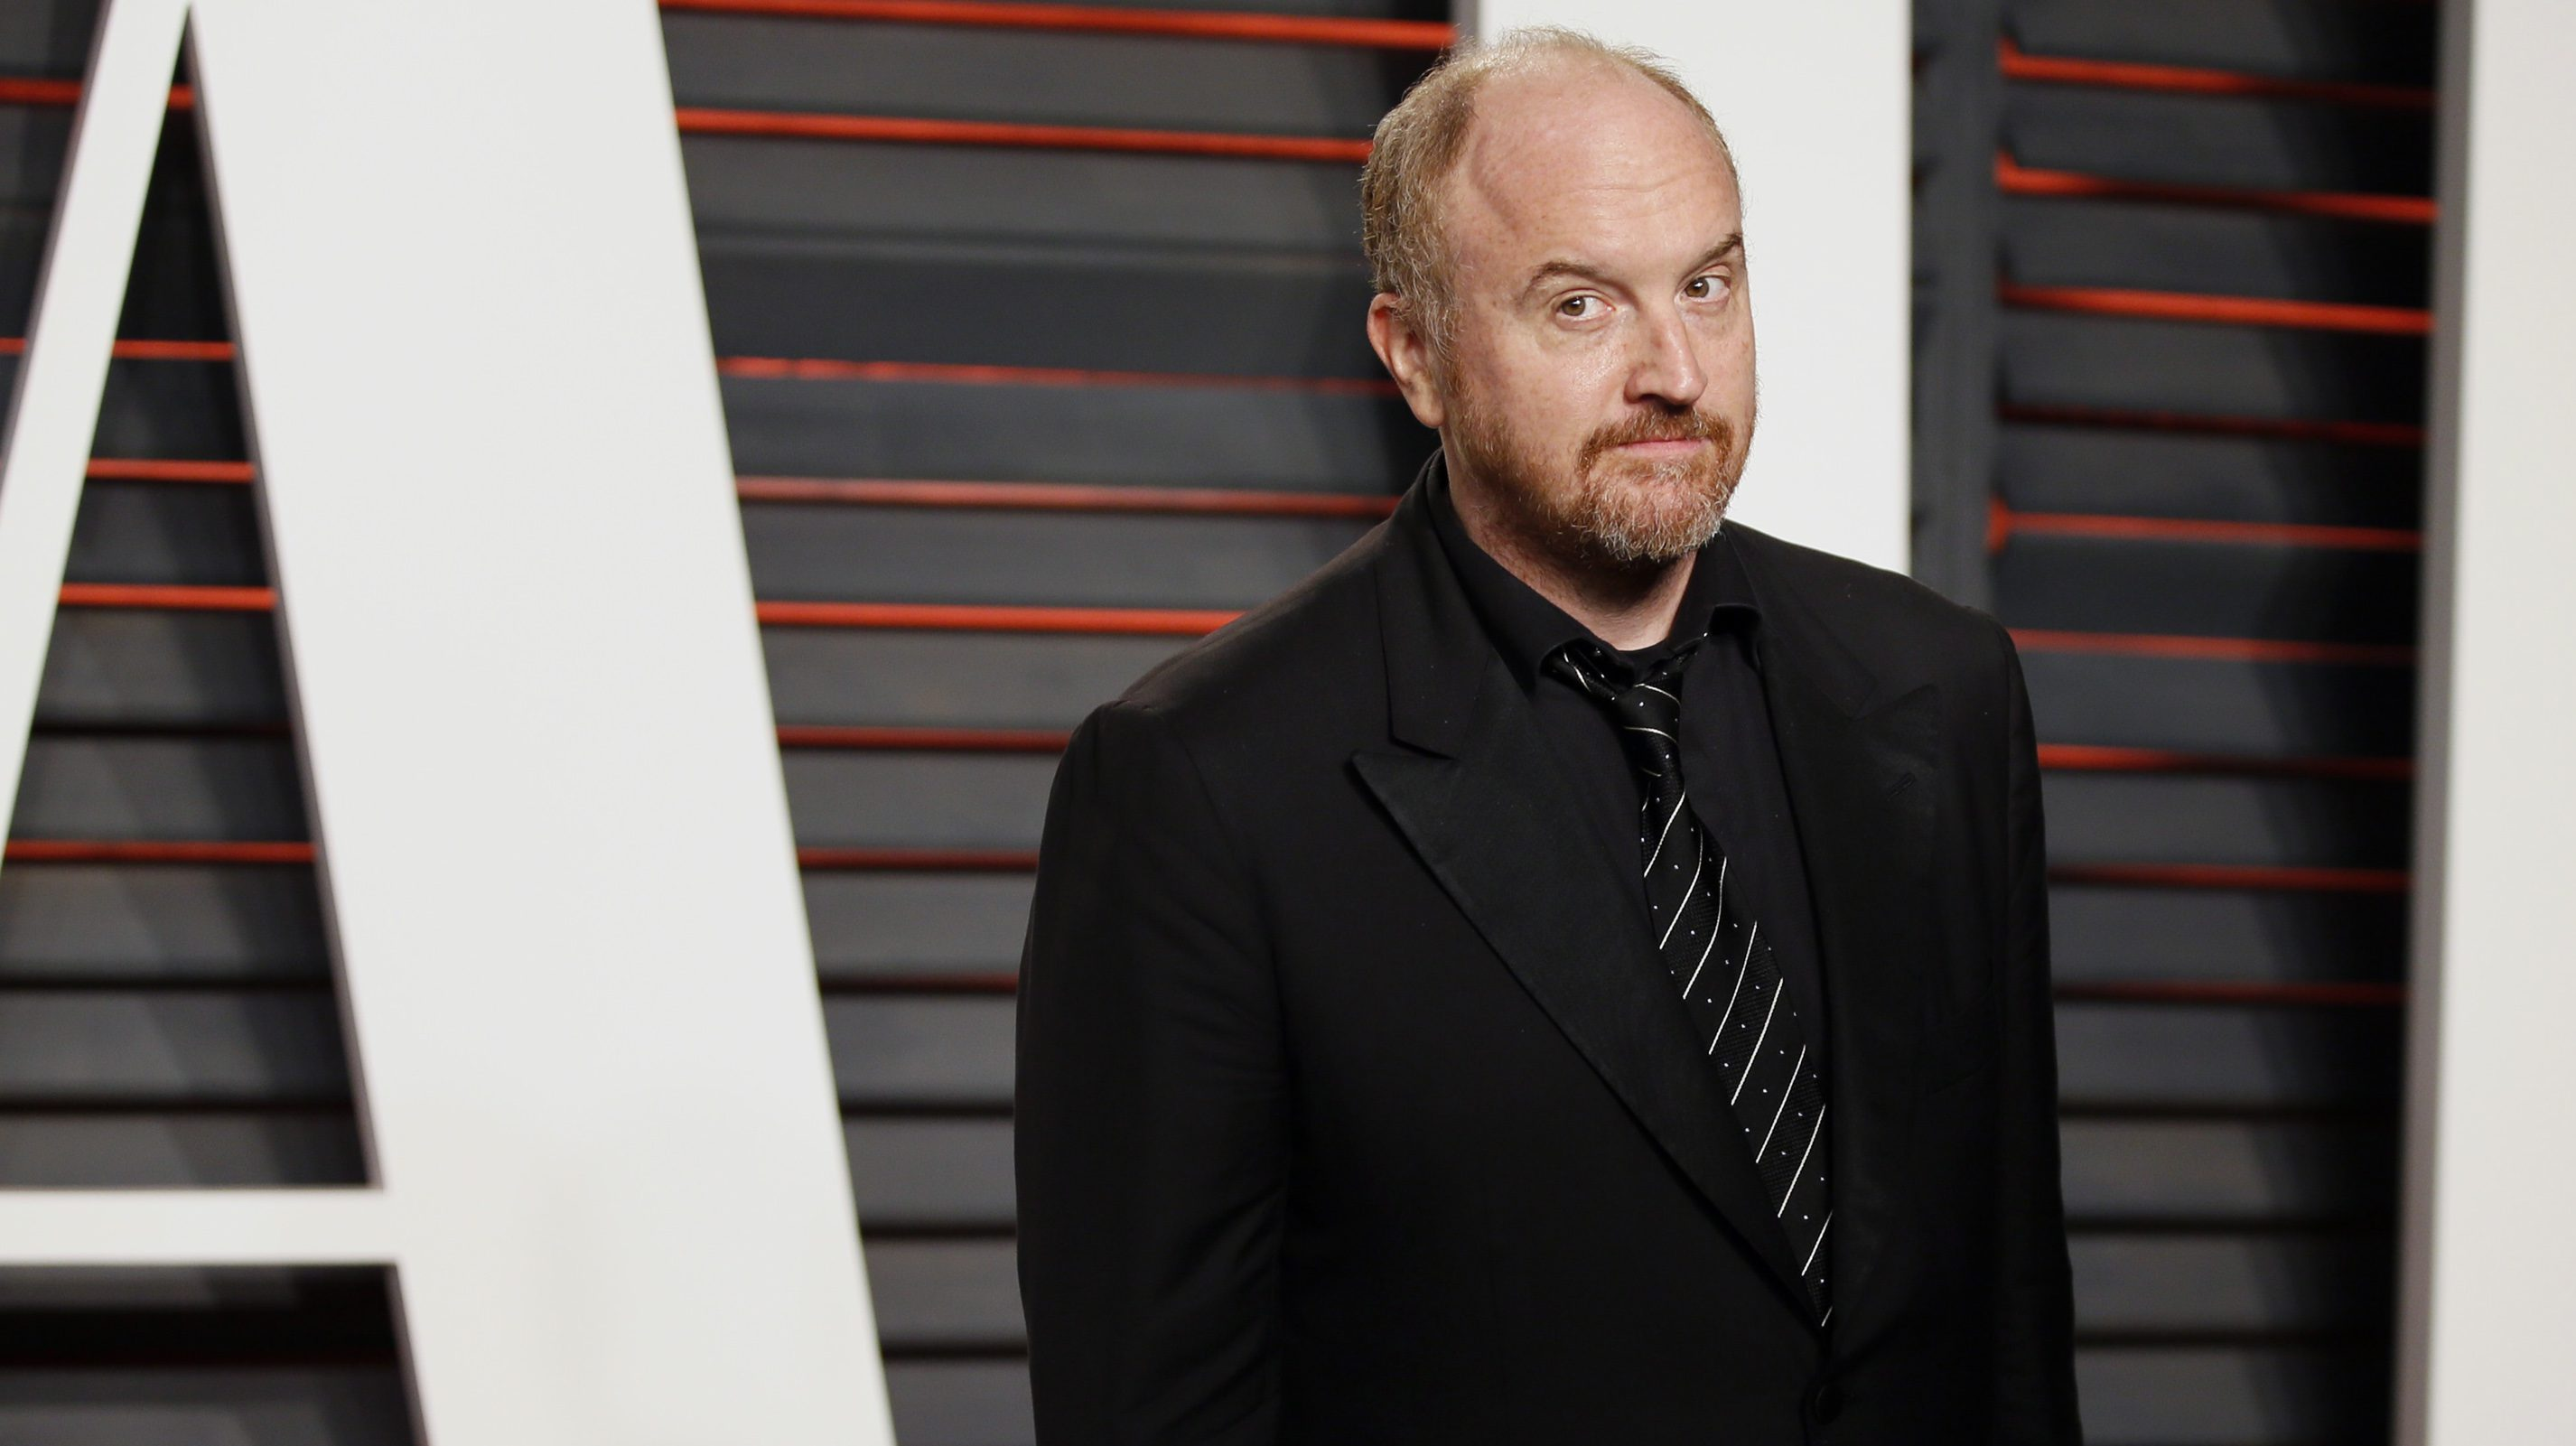 Comedian Louis C.K. arrives at the Vanity Fair Oscar Party